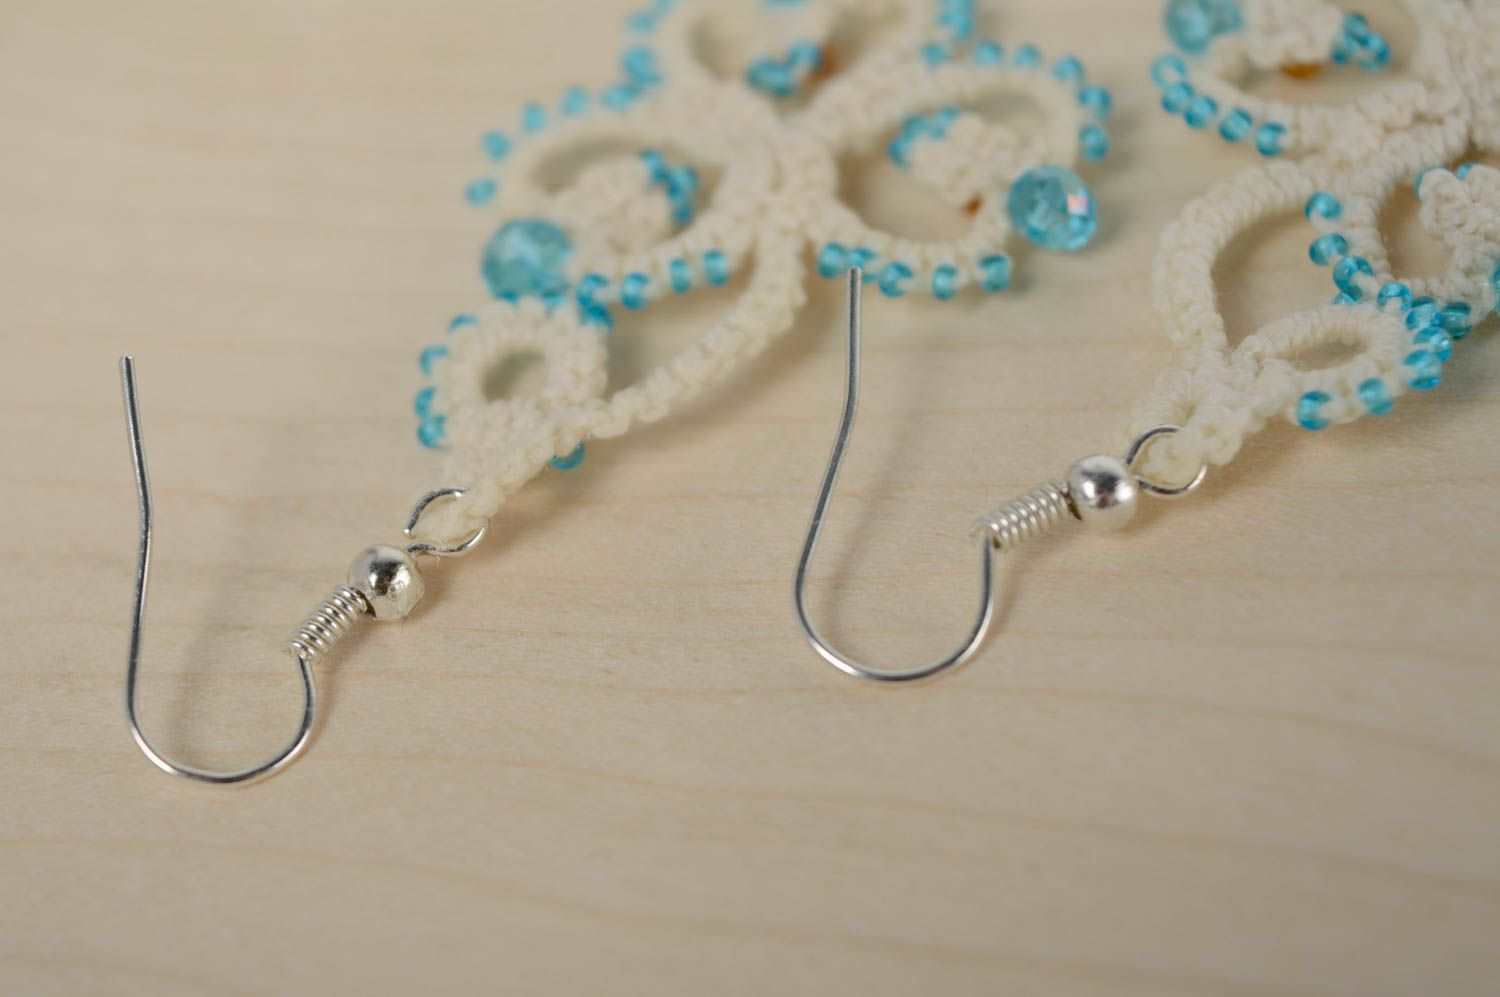 Festive woven earrings photo 5